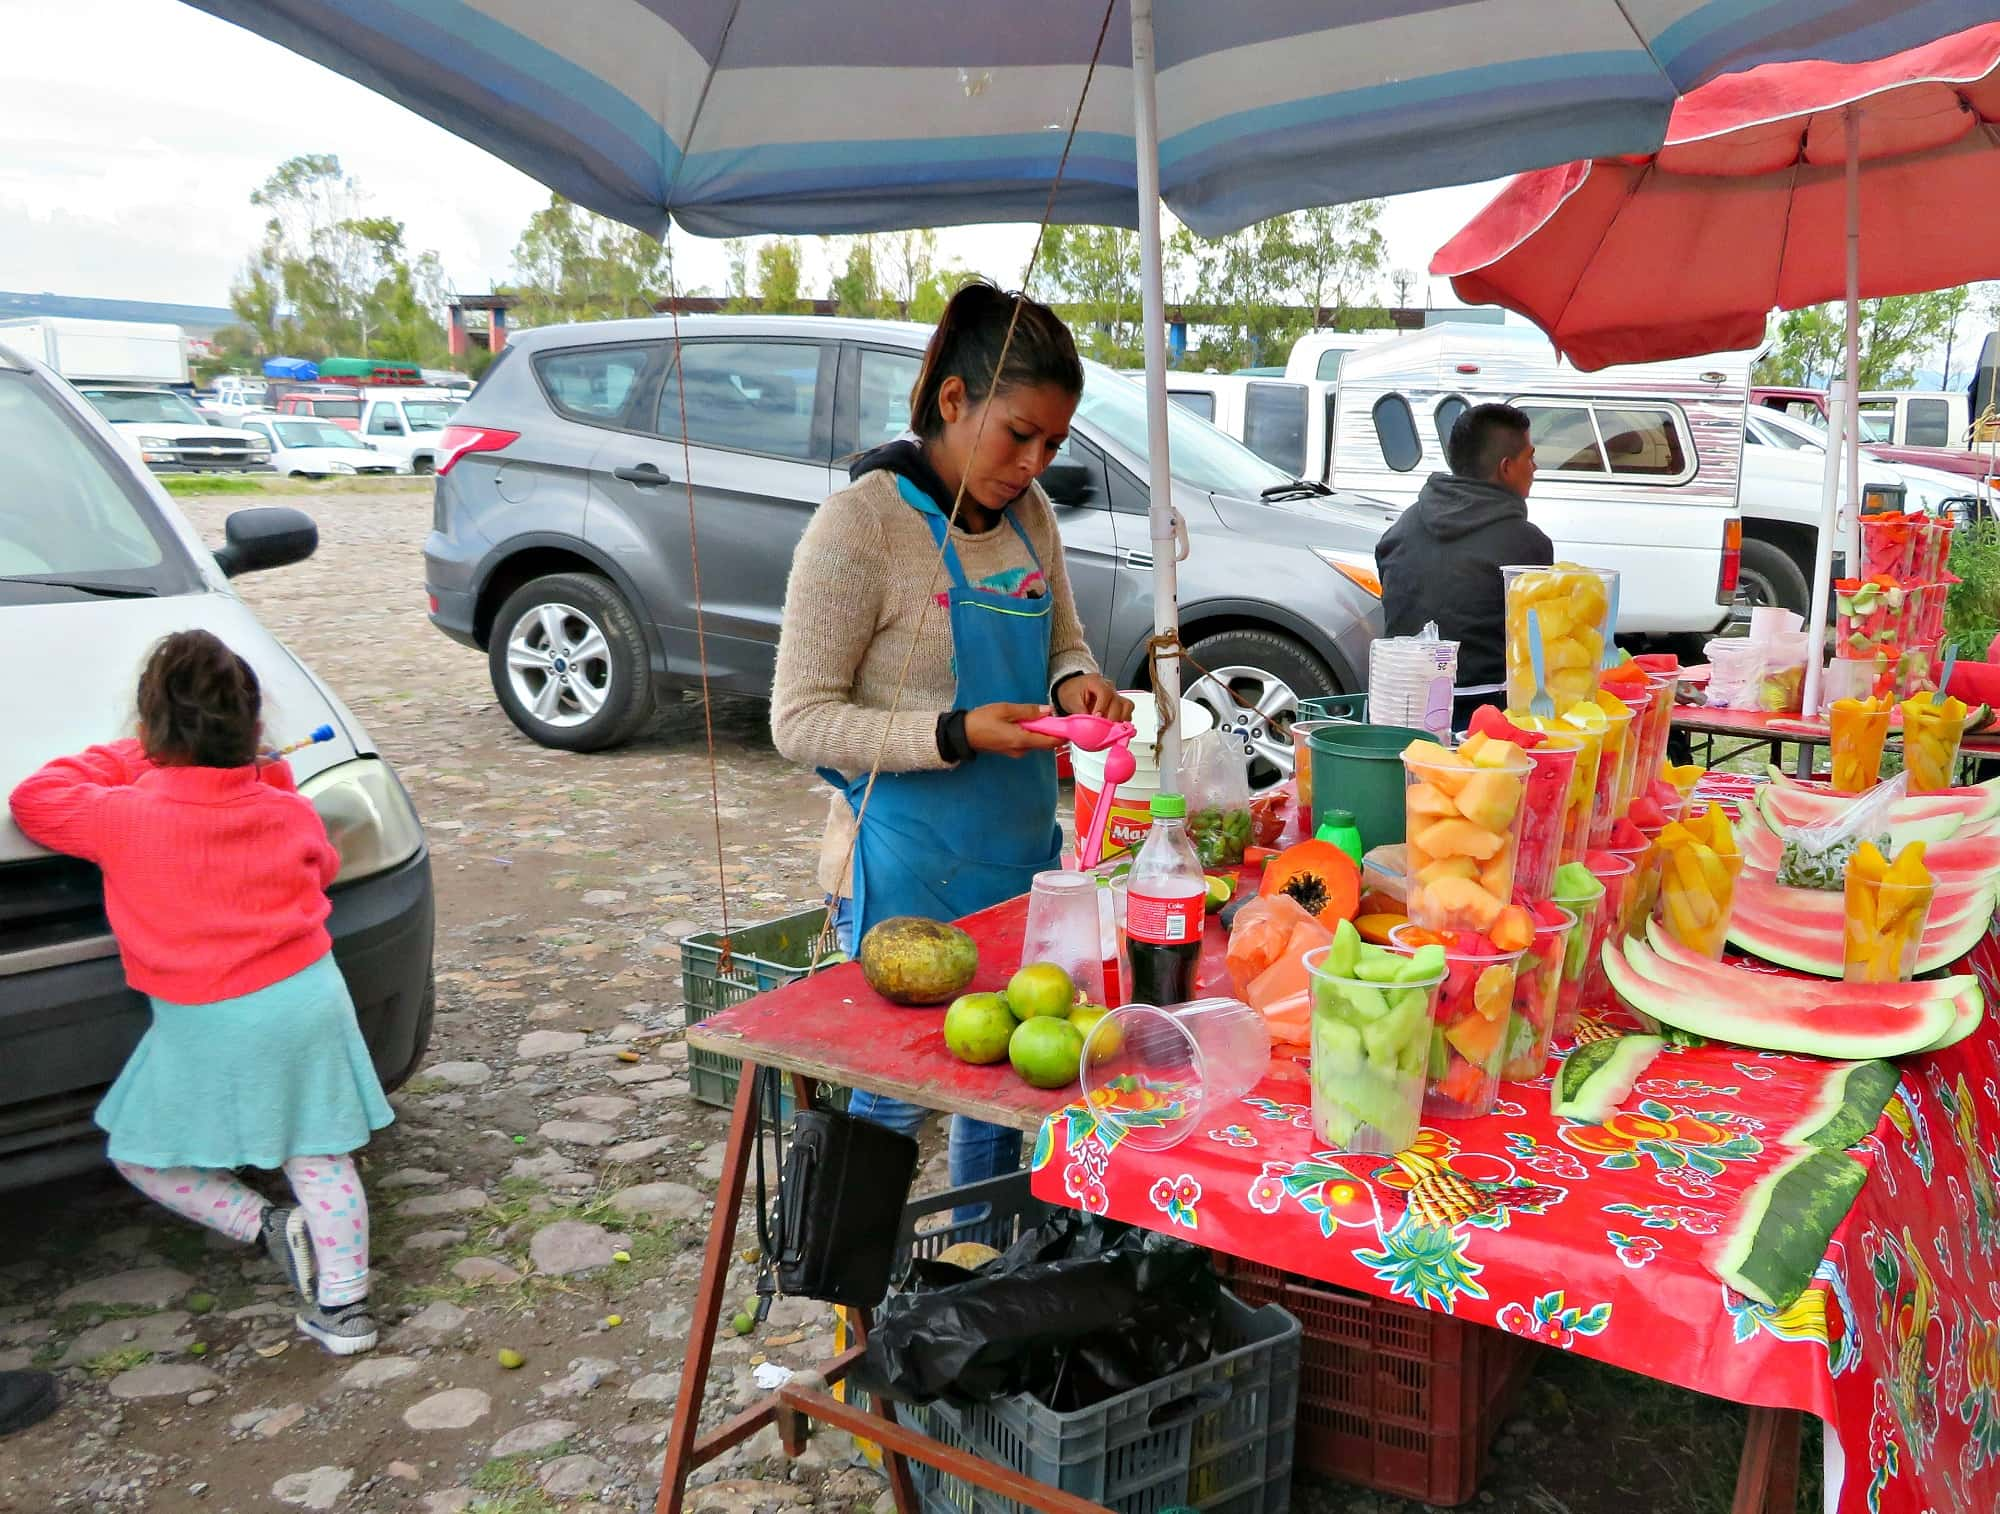 A vendor selling fresh fruits at Tuesday Market in San Miguel de Allende with kids